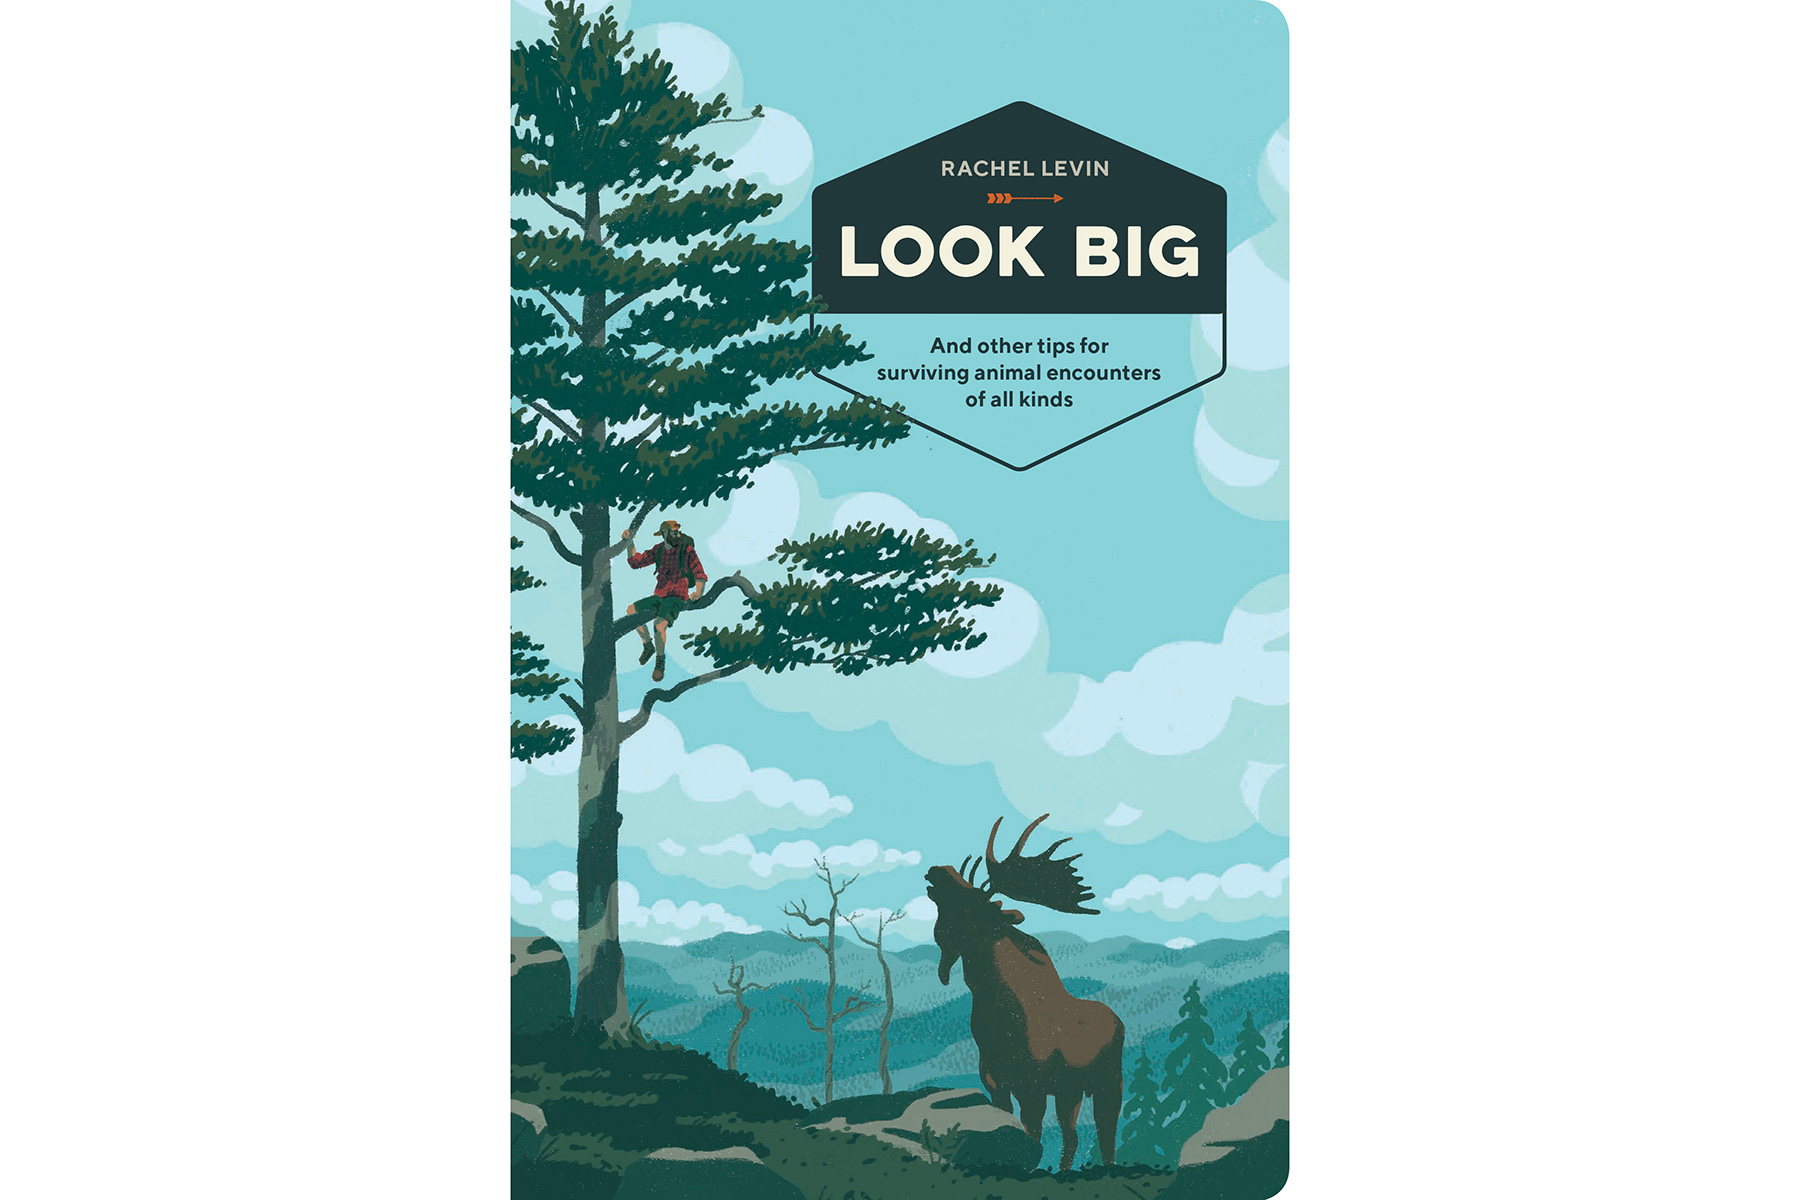 Look Big, by Rachel Levin (father's day)